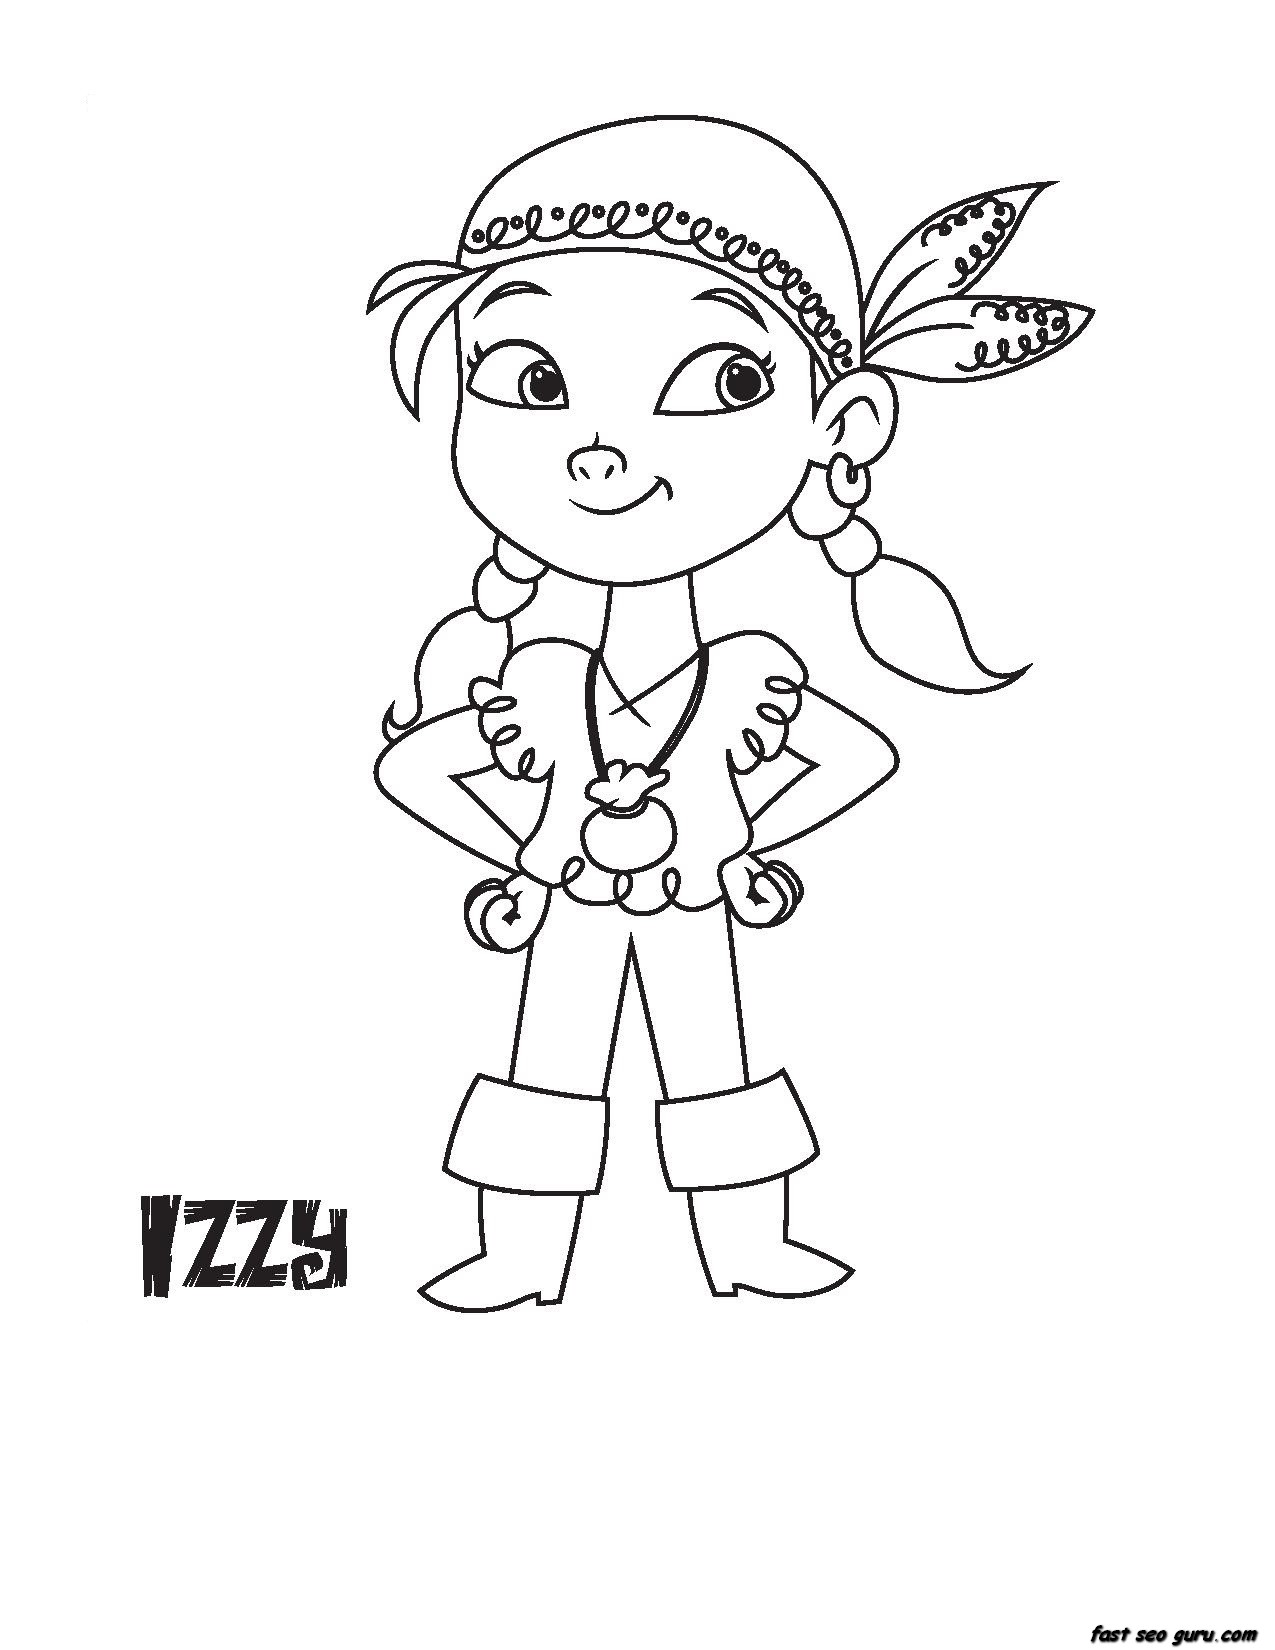 Coloring Pages Disney Junior : Printable disney junior izzy coloring book pages